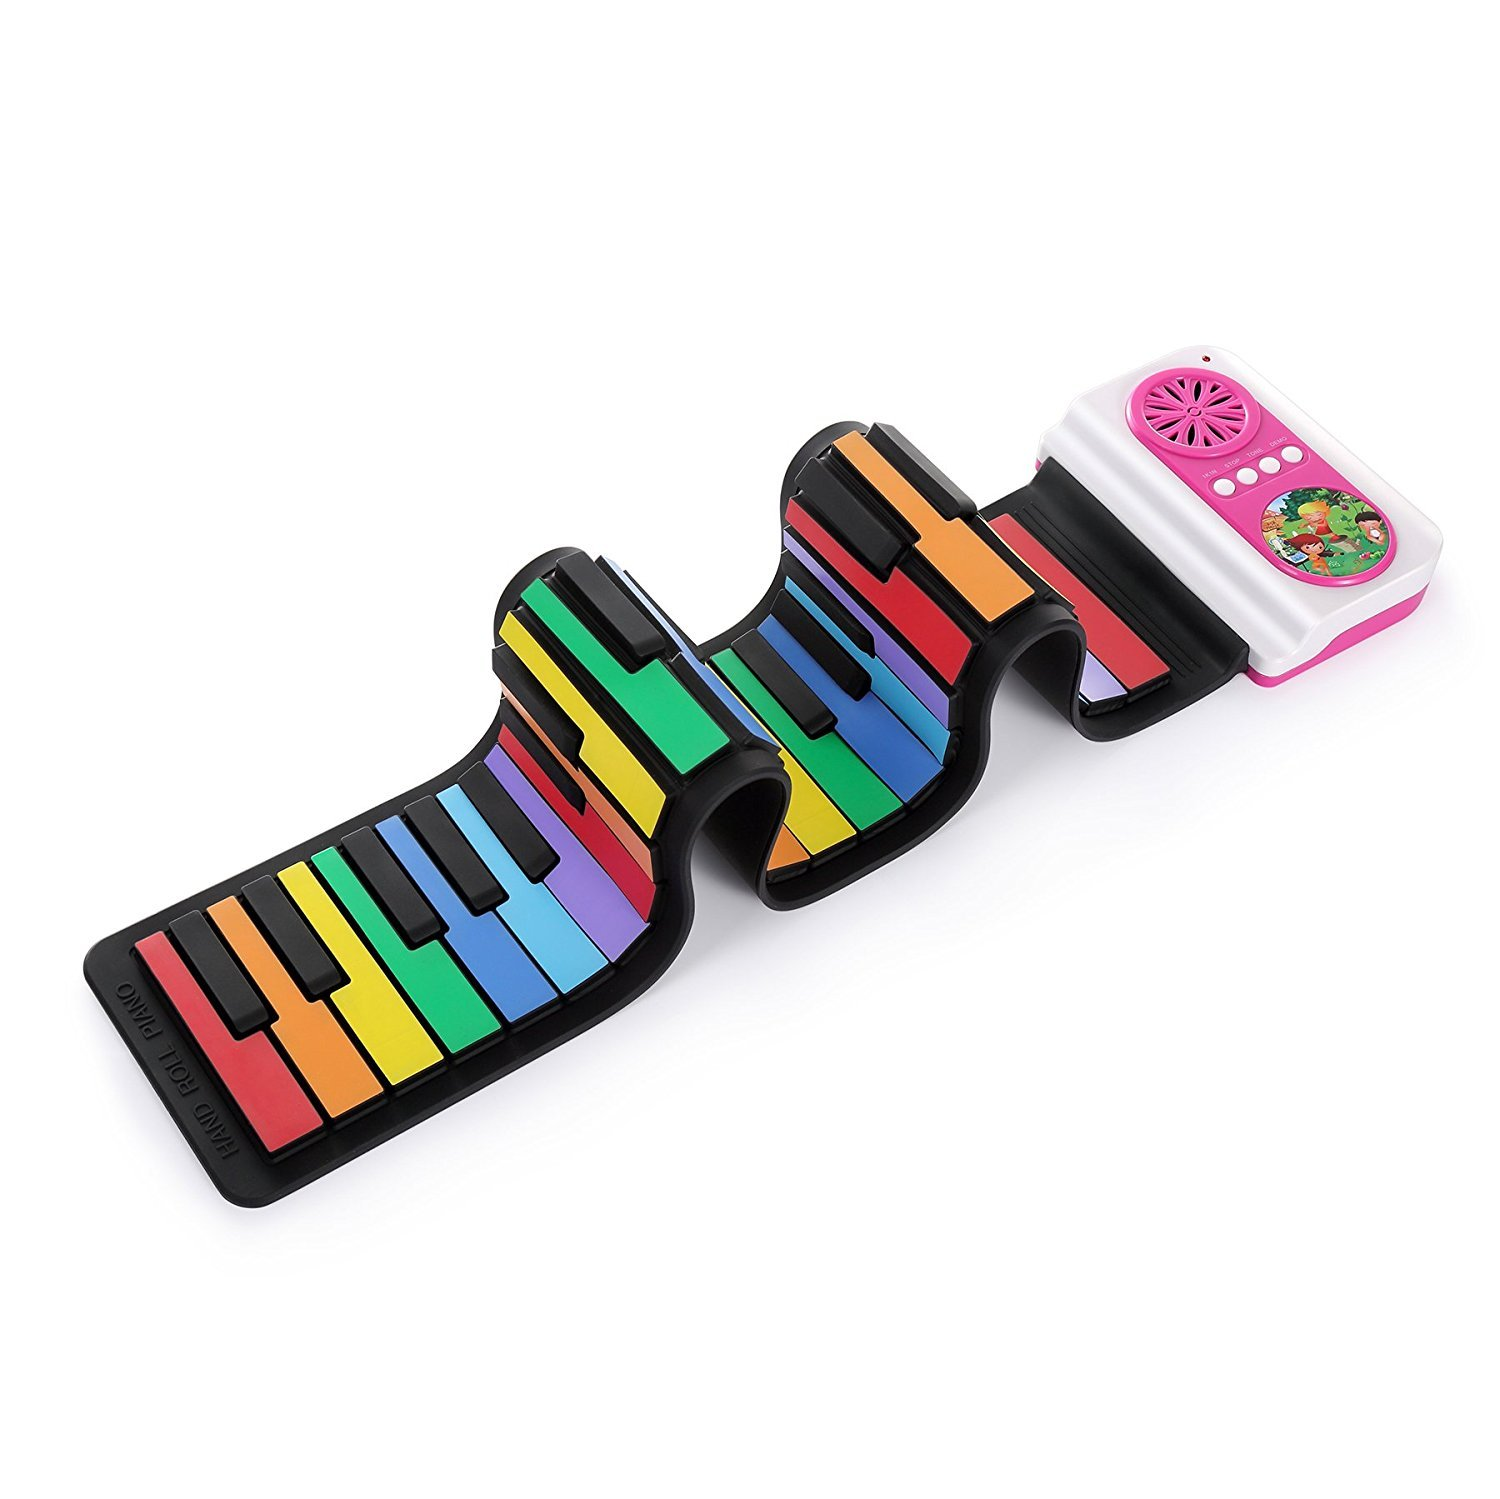 aPerfectLife Roll up Keyboard Piano, Rainbow Color 37 Standard Keys Flexible Kids Piano Keyboard with Inbuilt Speaker Educational Toy for Children